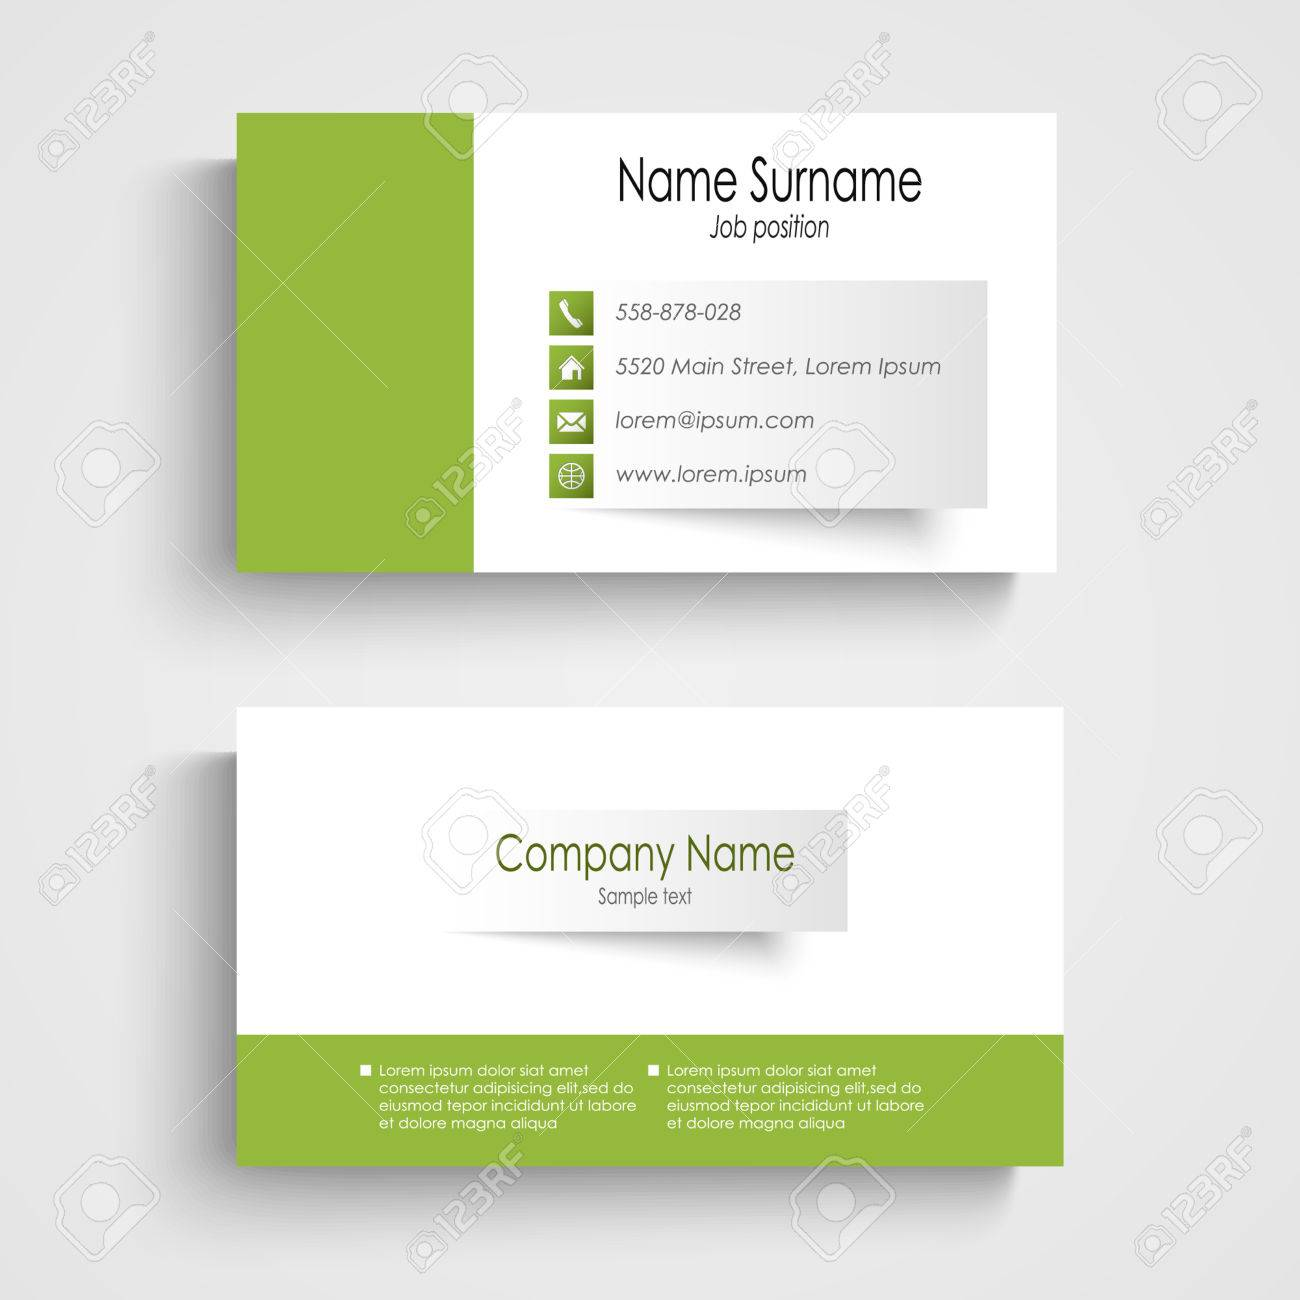 Modern green business card template vector eps 10 royalty free modern green business card template vector eps 10 stock vector 28111554 accmission Gallery